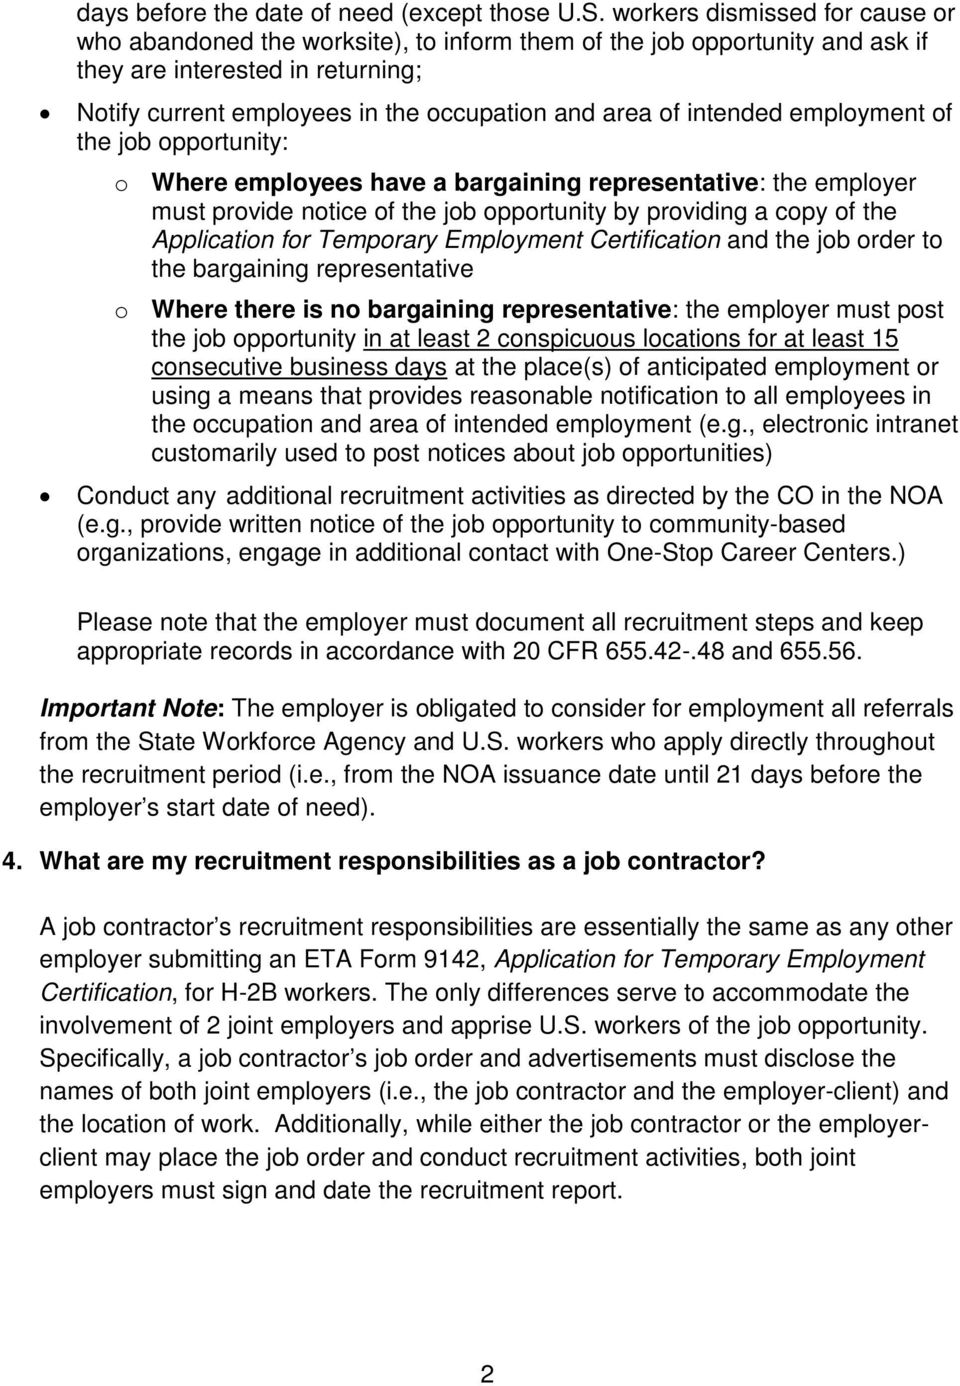 intended employment of the job opportunity: o Where employees have a bargaining representative: the employer must provide notice of the job opportunity by providing a copy of the Application for